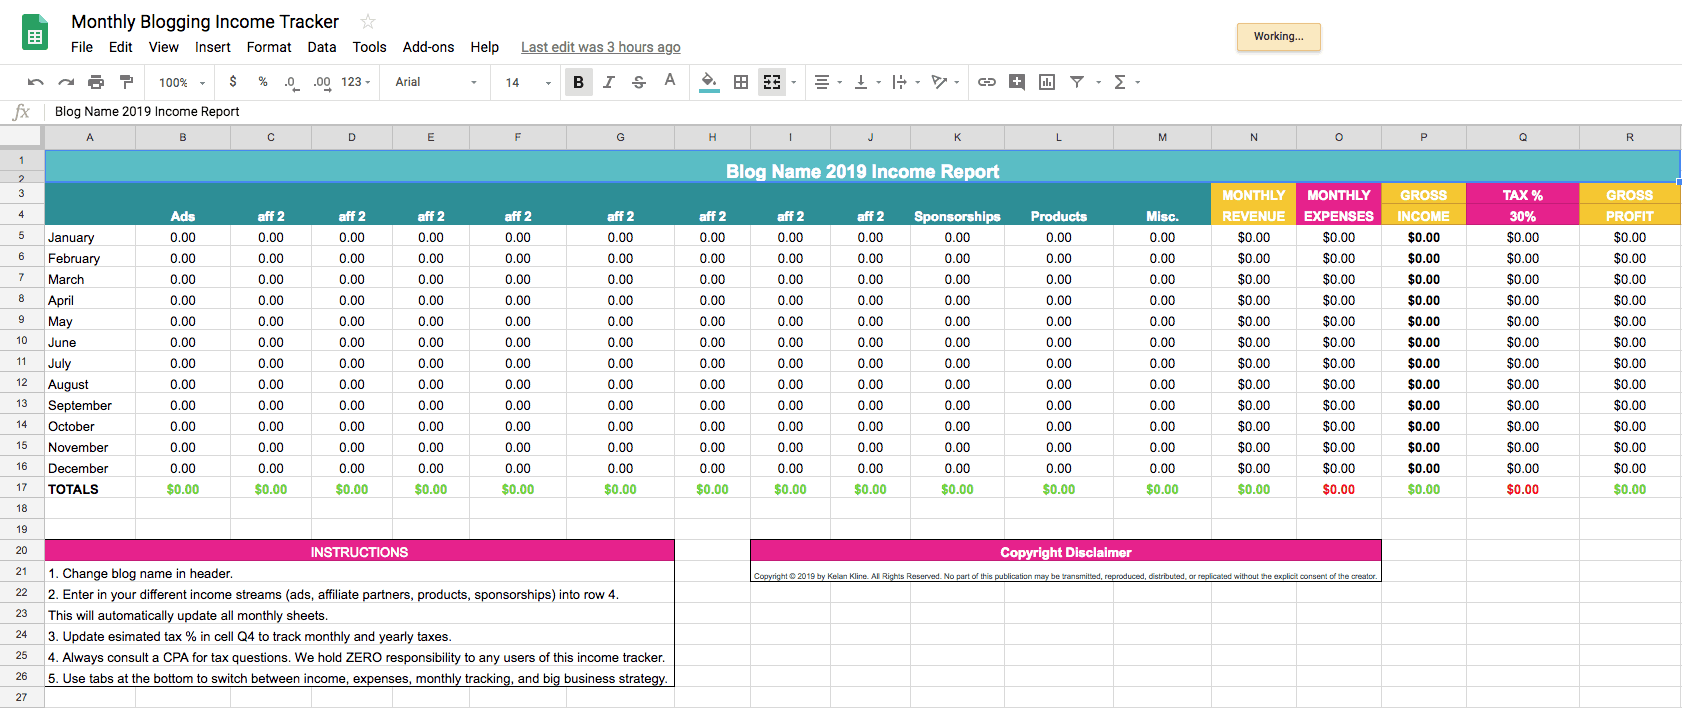 Monthly Blogging Income Tracker